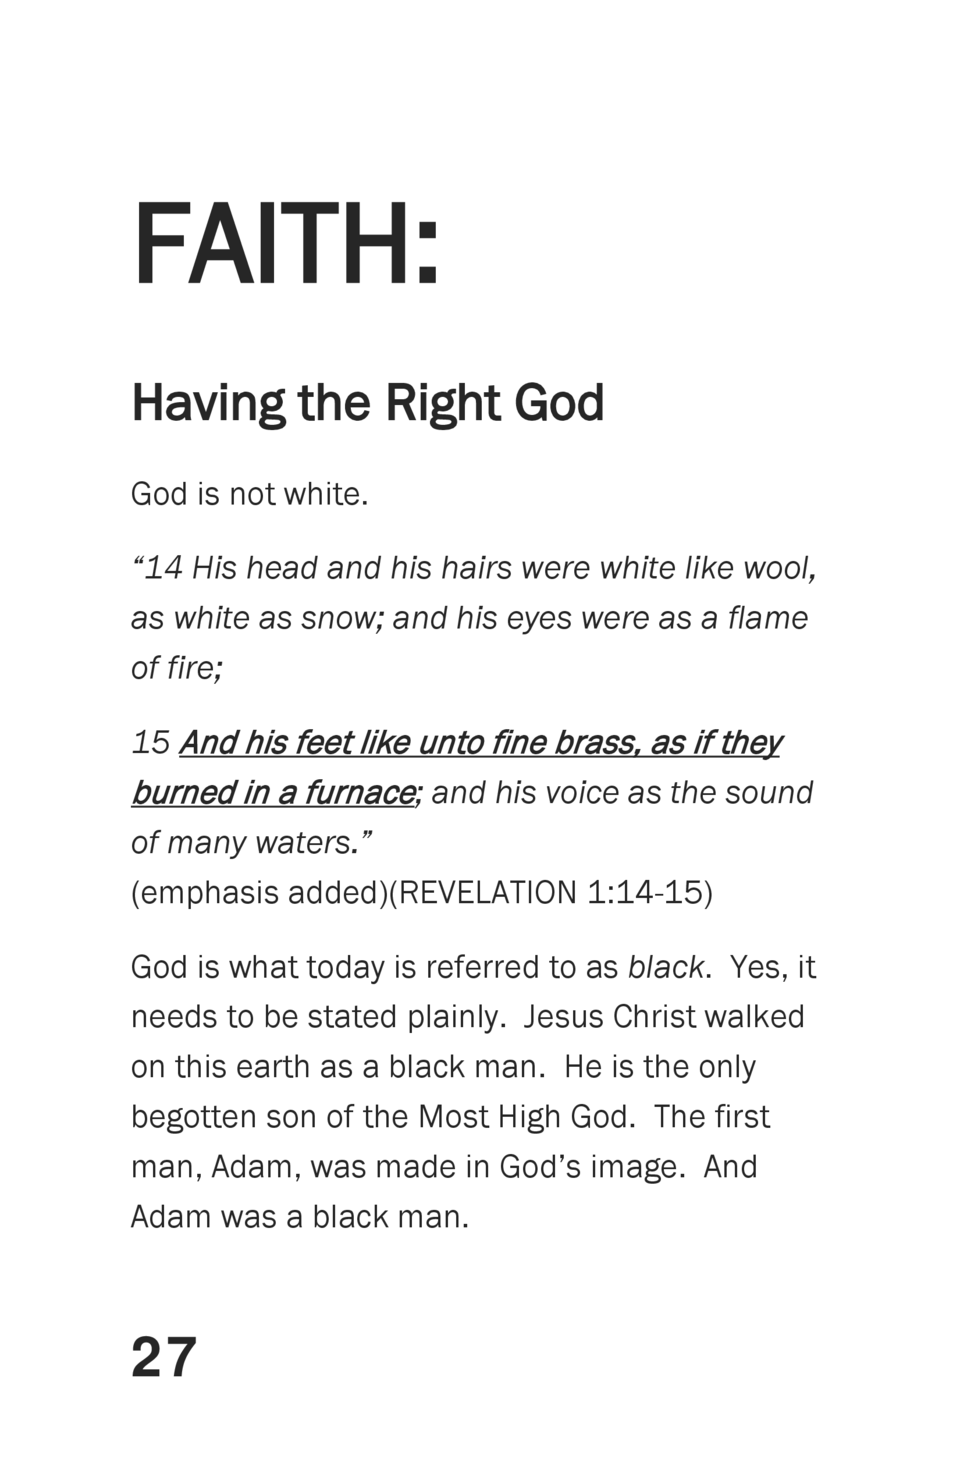 FAITH  Having the Right God God is not white.    14 His head and his hairs were white like wool, as white as snow  and his...